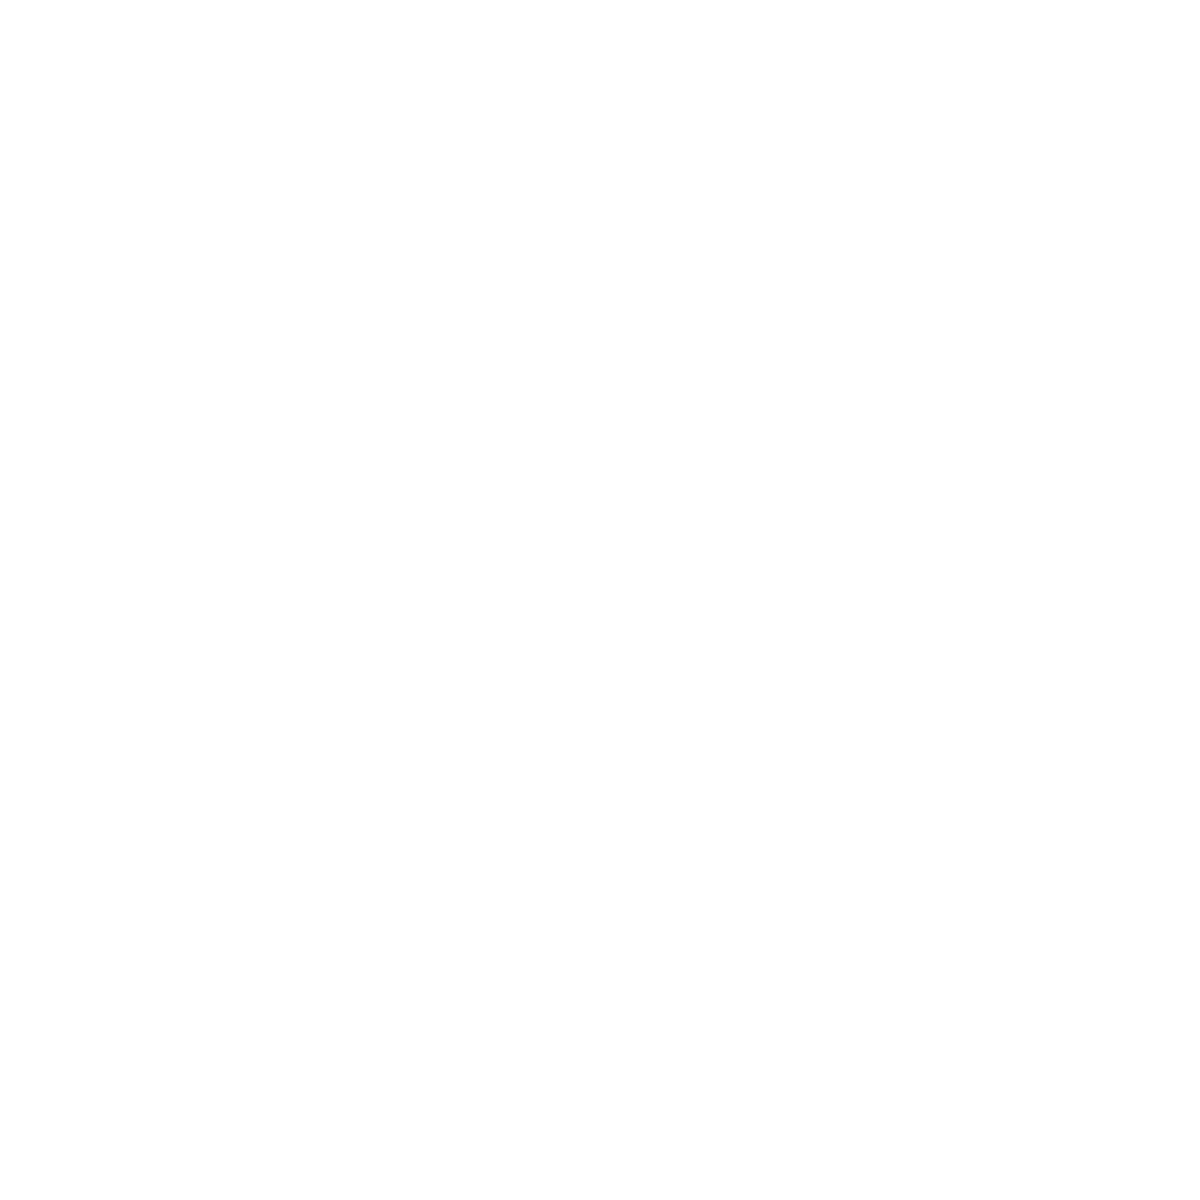 Ranch Church